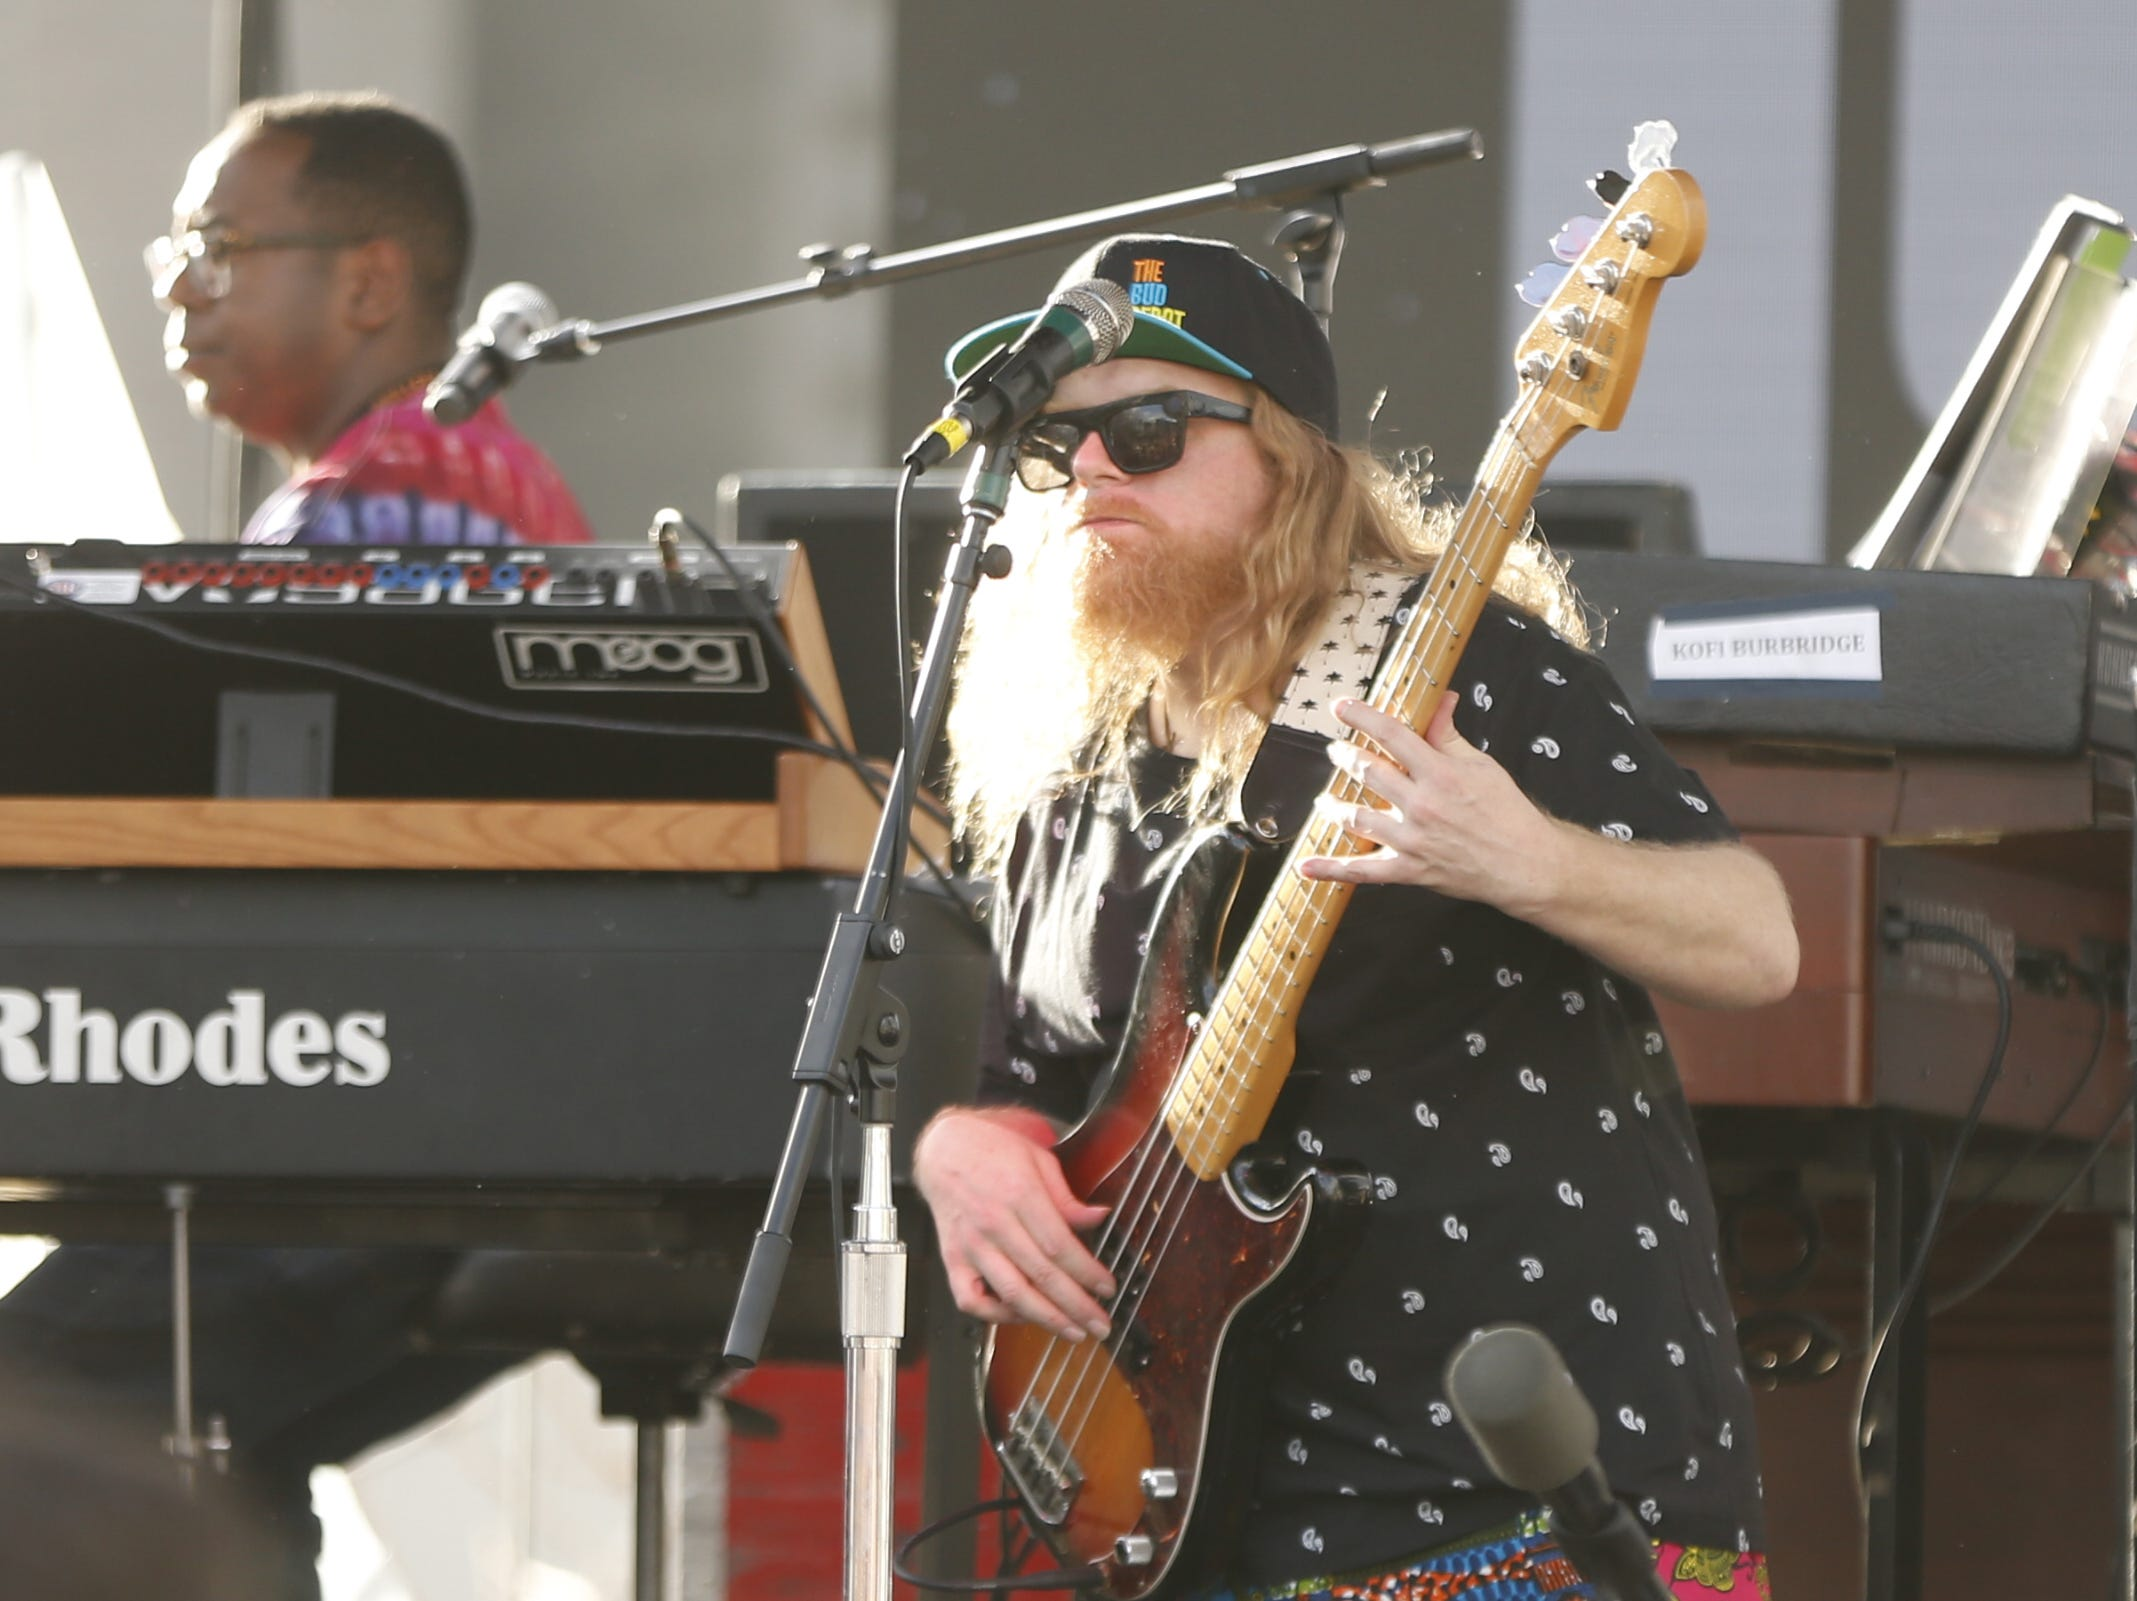 Lettuce performs during the McDowell Mountain Music Festival in Phoenix on March 2, 2019.